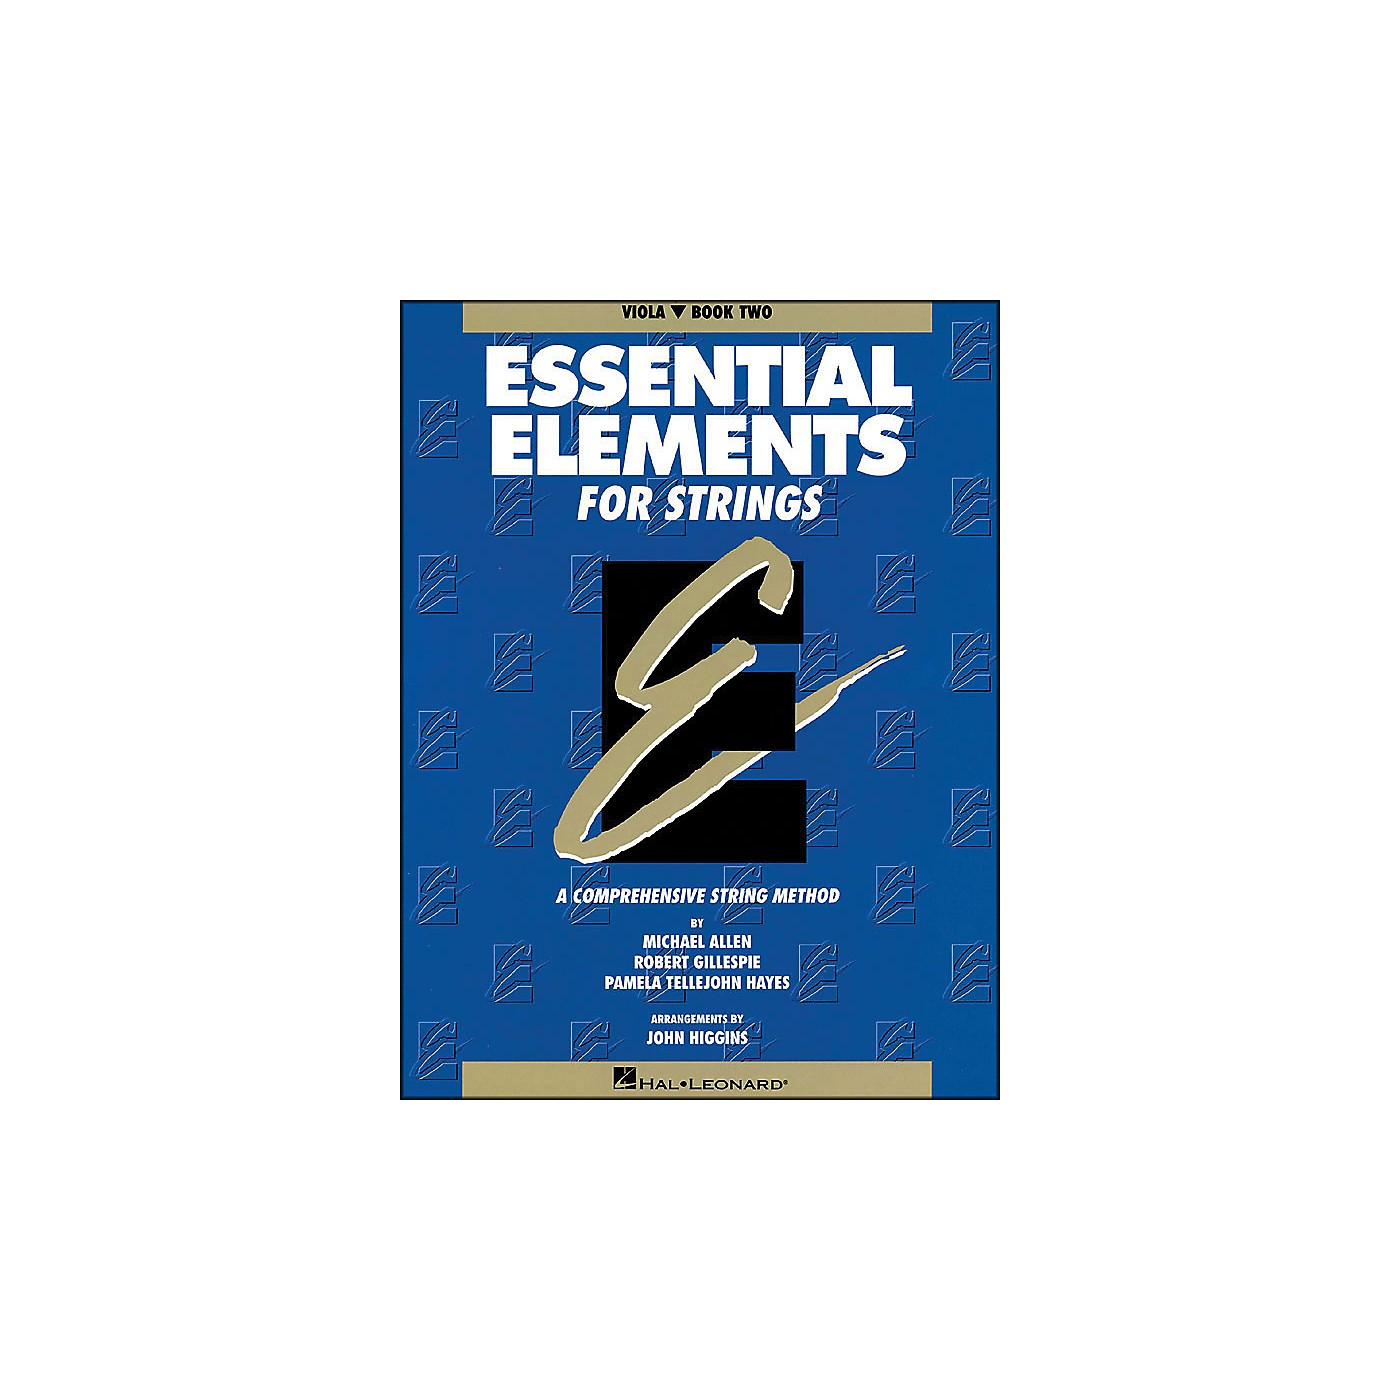 Hal Leonard String Book 2 Viola Essential Elements for Strings thumbnail